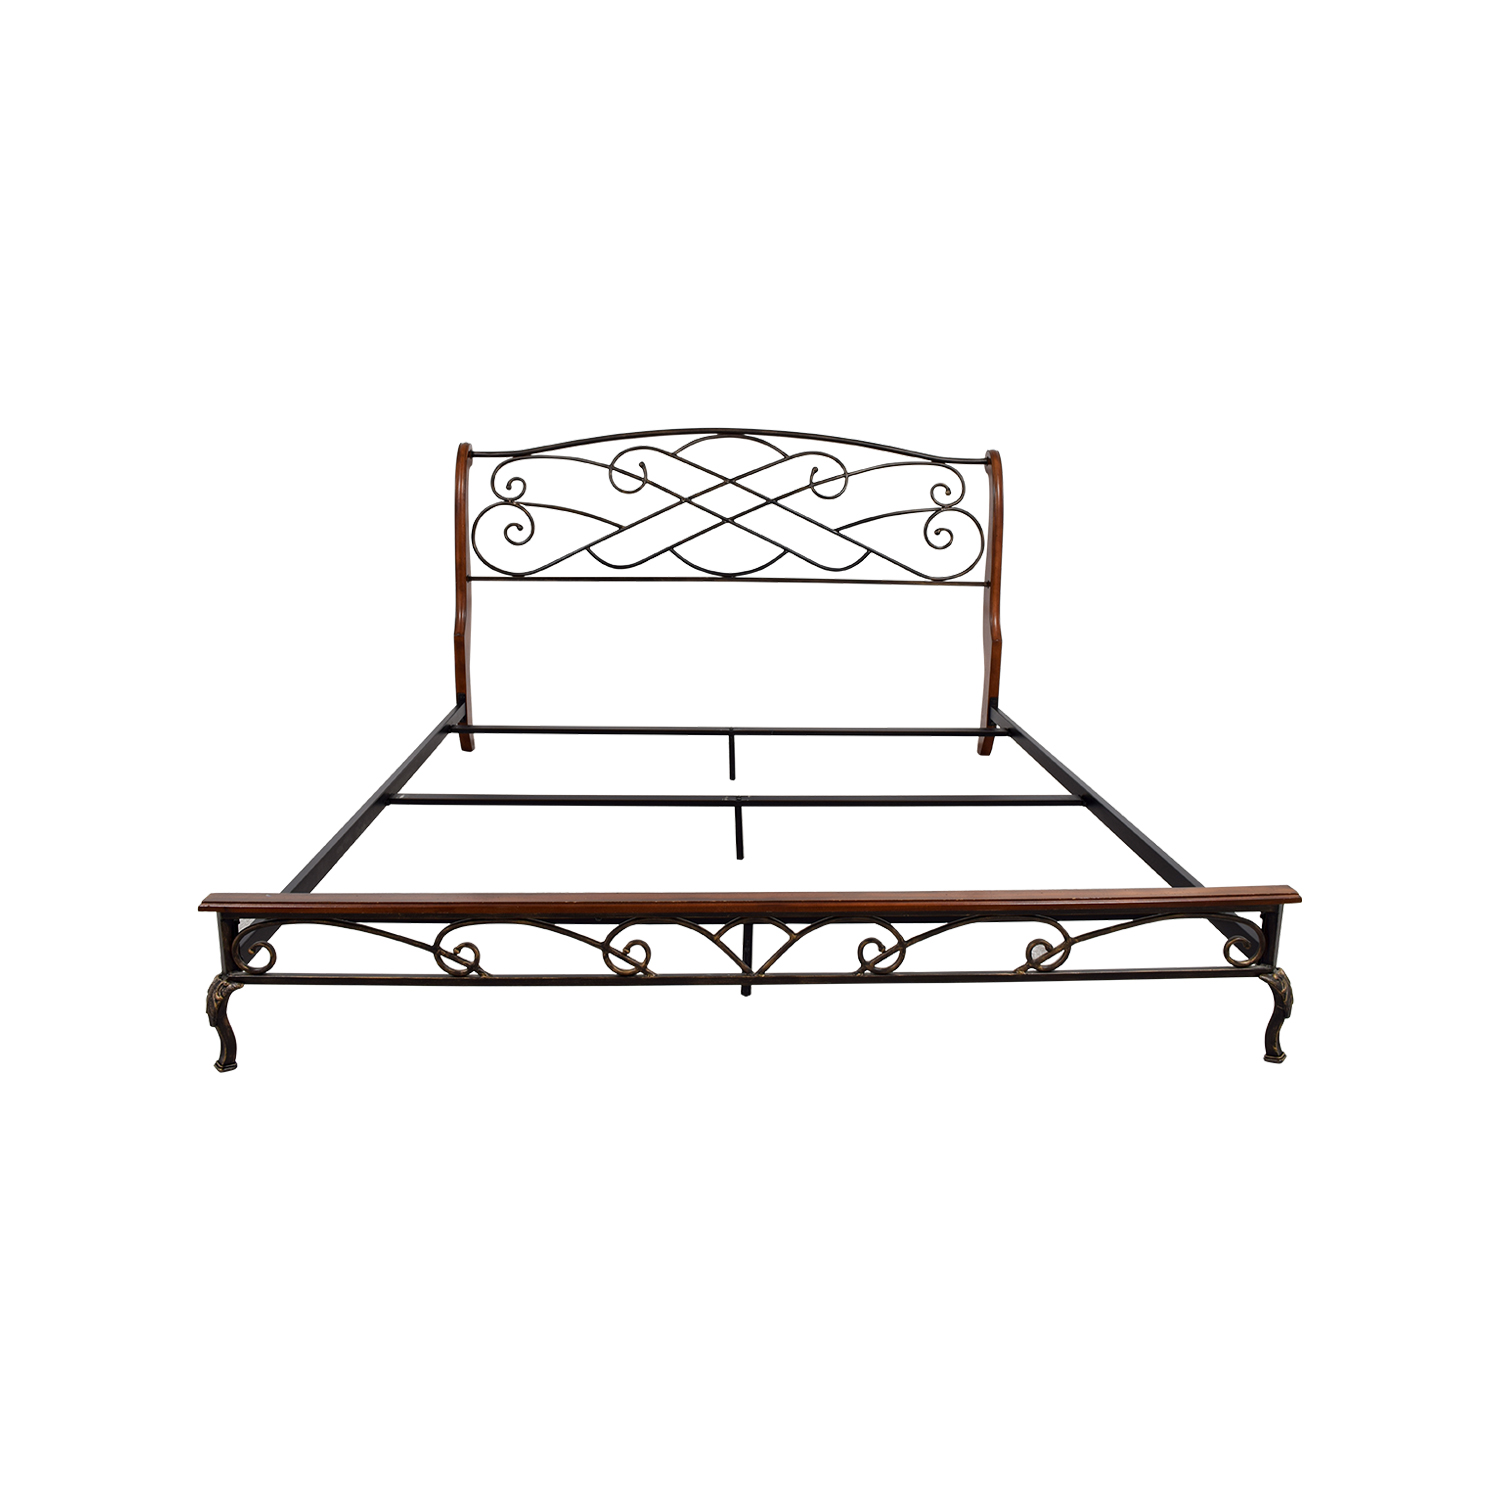 King Wood and Metal Bed Frame for sale